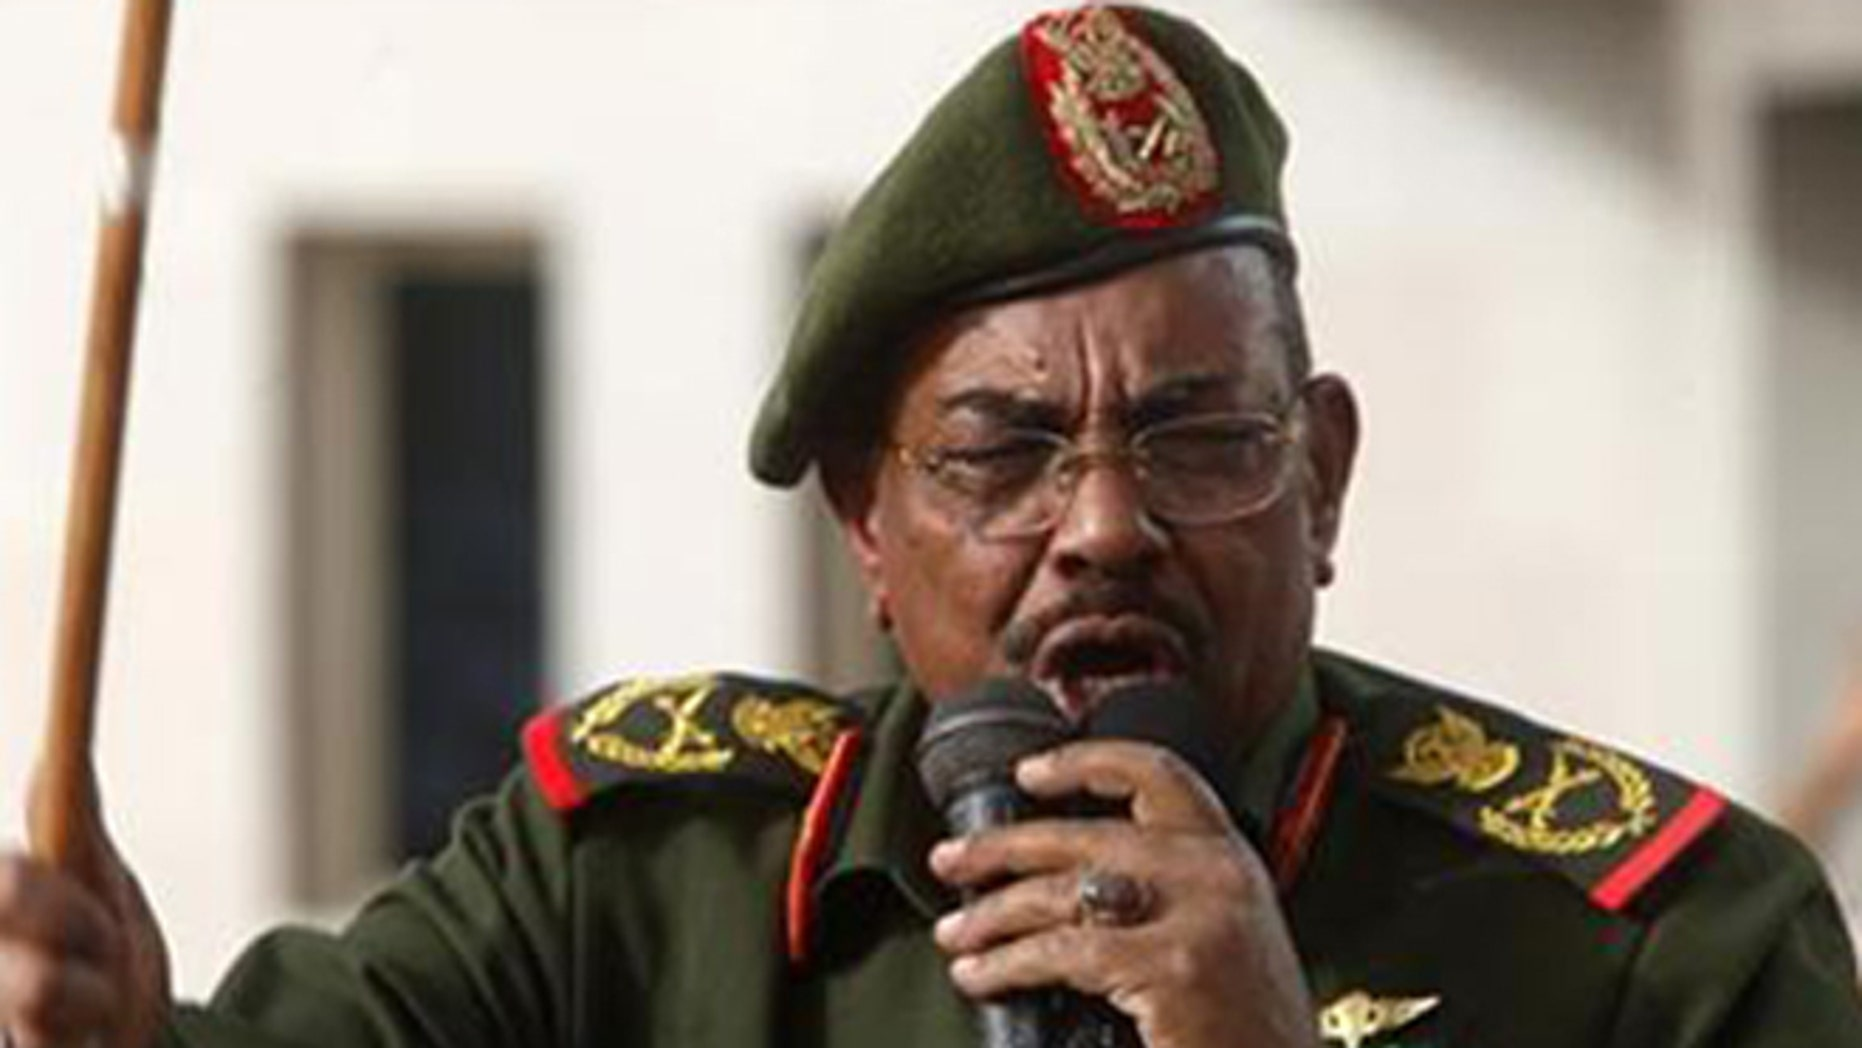 Sudanese President Omar al-Bashir is wanted by the International Criminal COurt for crimes against humanity, but the EU thinks he can be a partner. (Reuters0